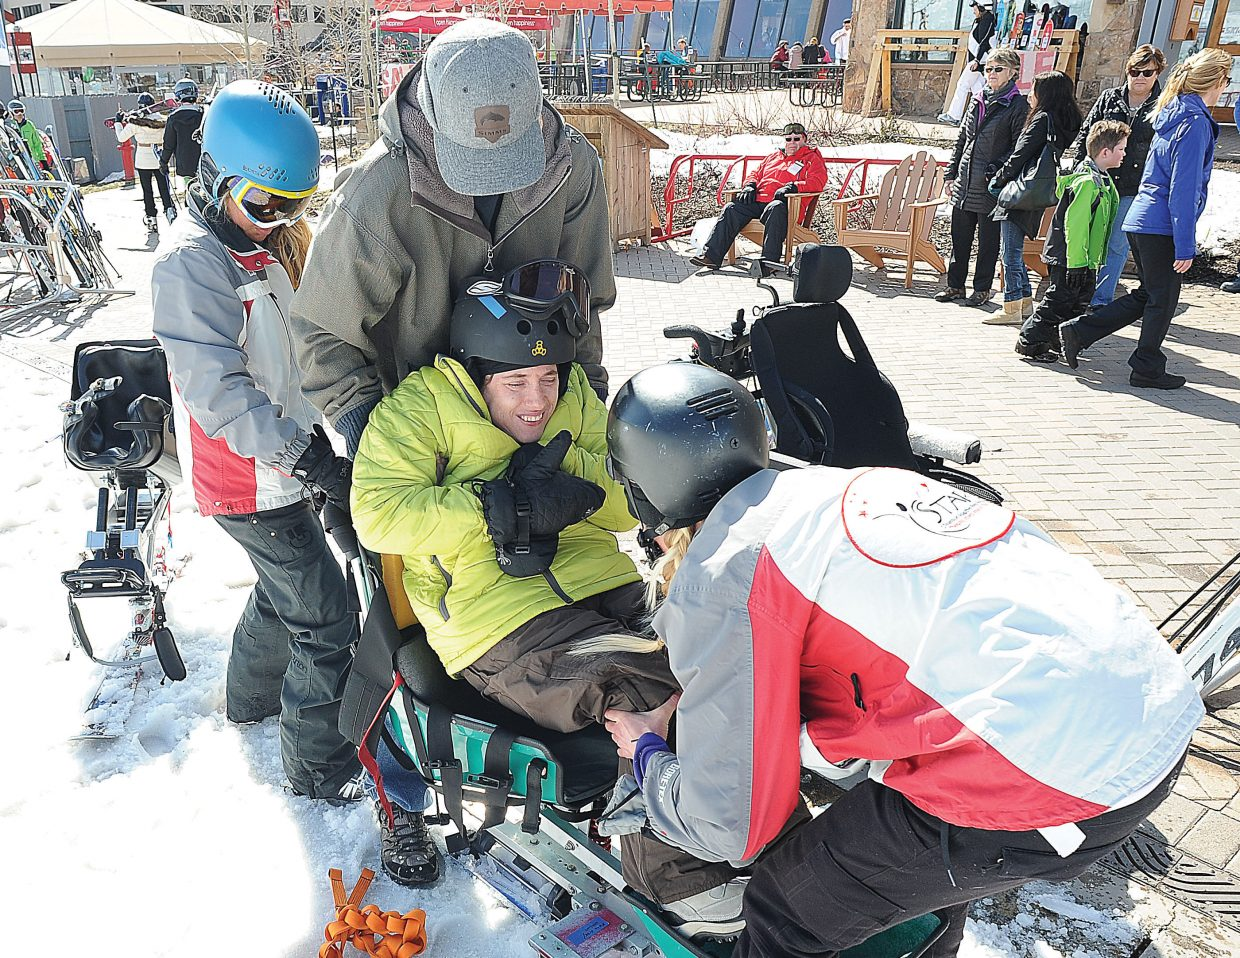 STARS guides Cheyna Swartz (right) and Carly Koczera (left) help Horizons client Alyessa Yeagher into a sit-ski earlier this winter at Steamboat Ski Area. Horizons and STARS have teamed up to offer clients the chance to get on the mountain and ski in the winter.